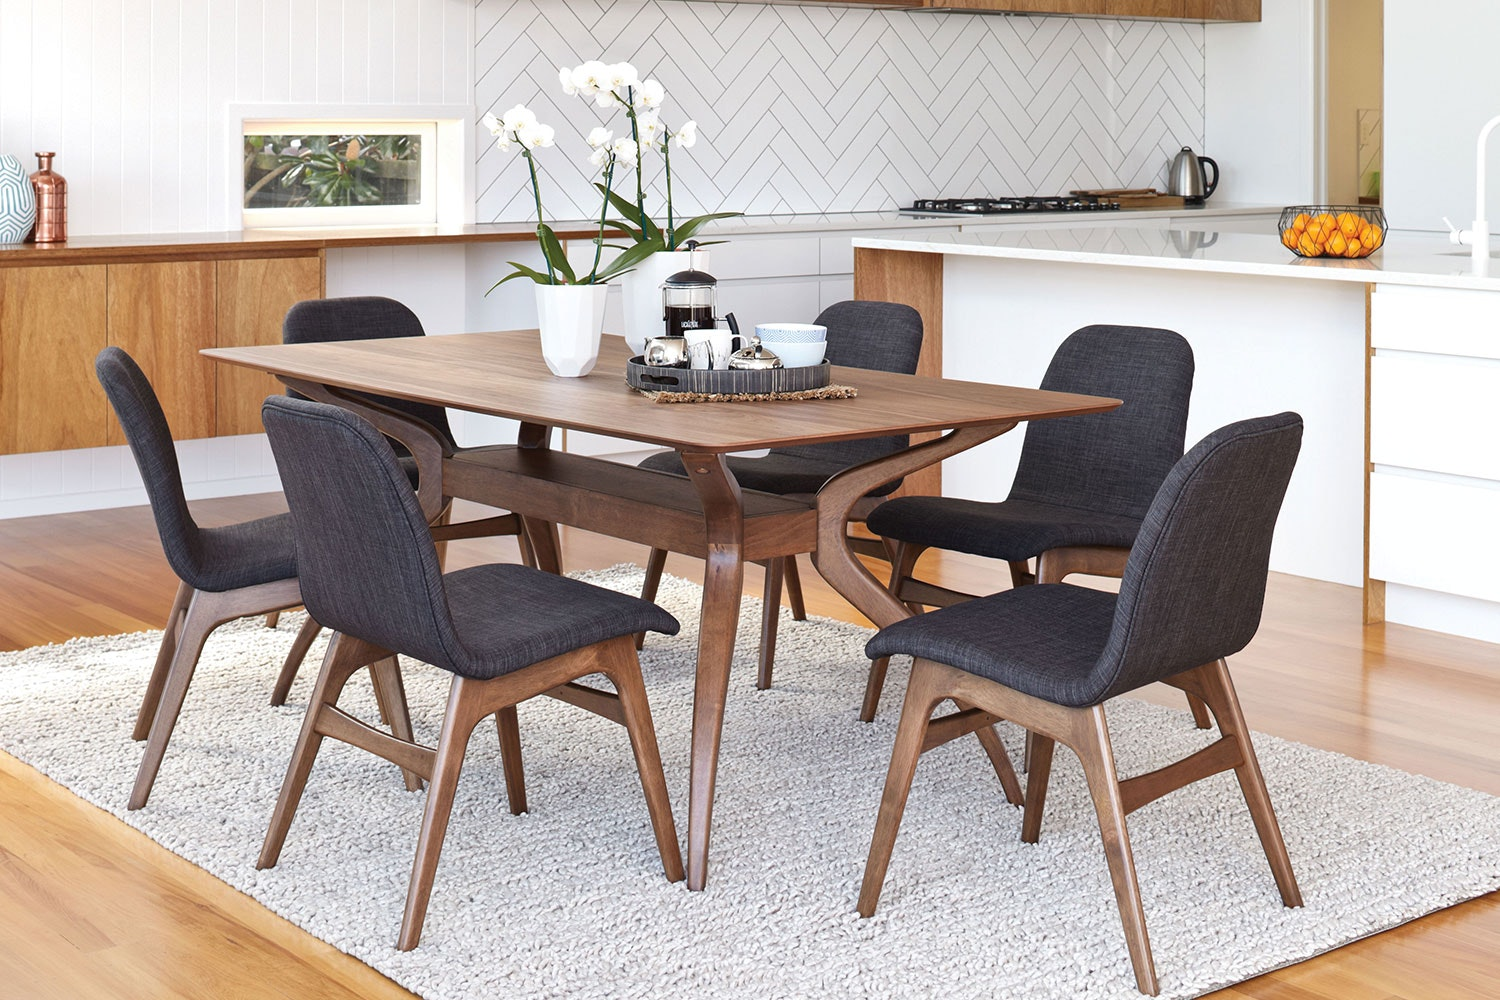 Embrace 7 Piece Wood Dining Suite by Nero Furniture